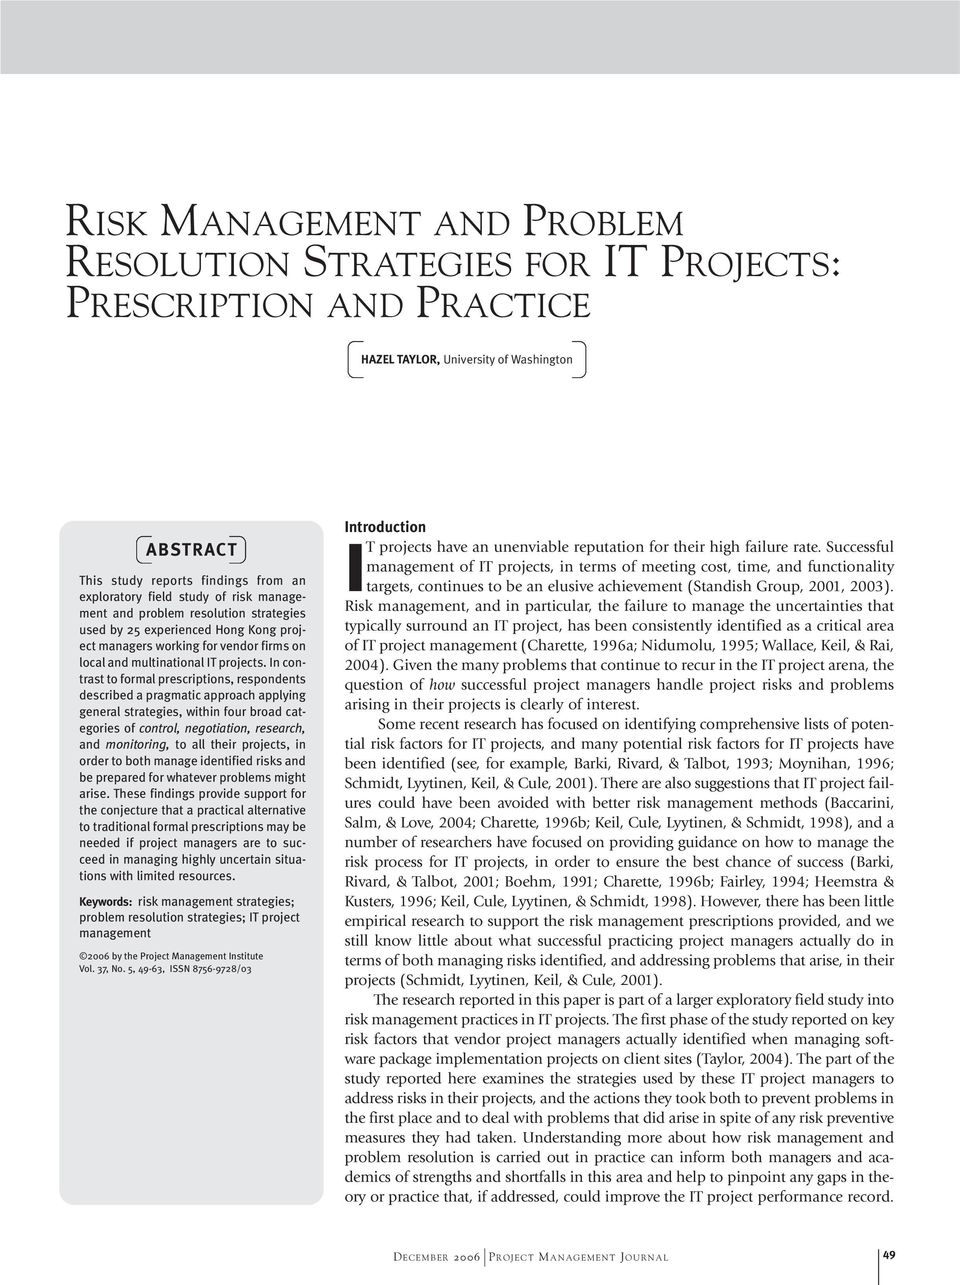 In contrast to formal prescriptions, respondents described a pragmatic approach applying general strategies, within four broad categories of control, negotiation, research, and monitoring, to all